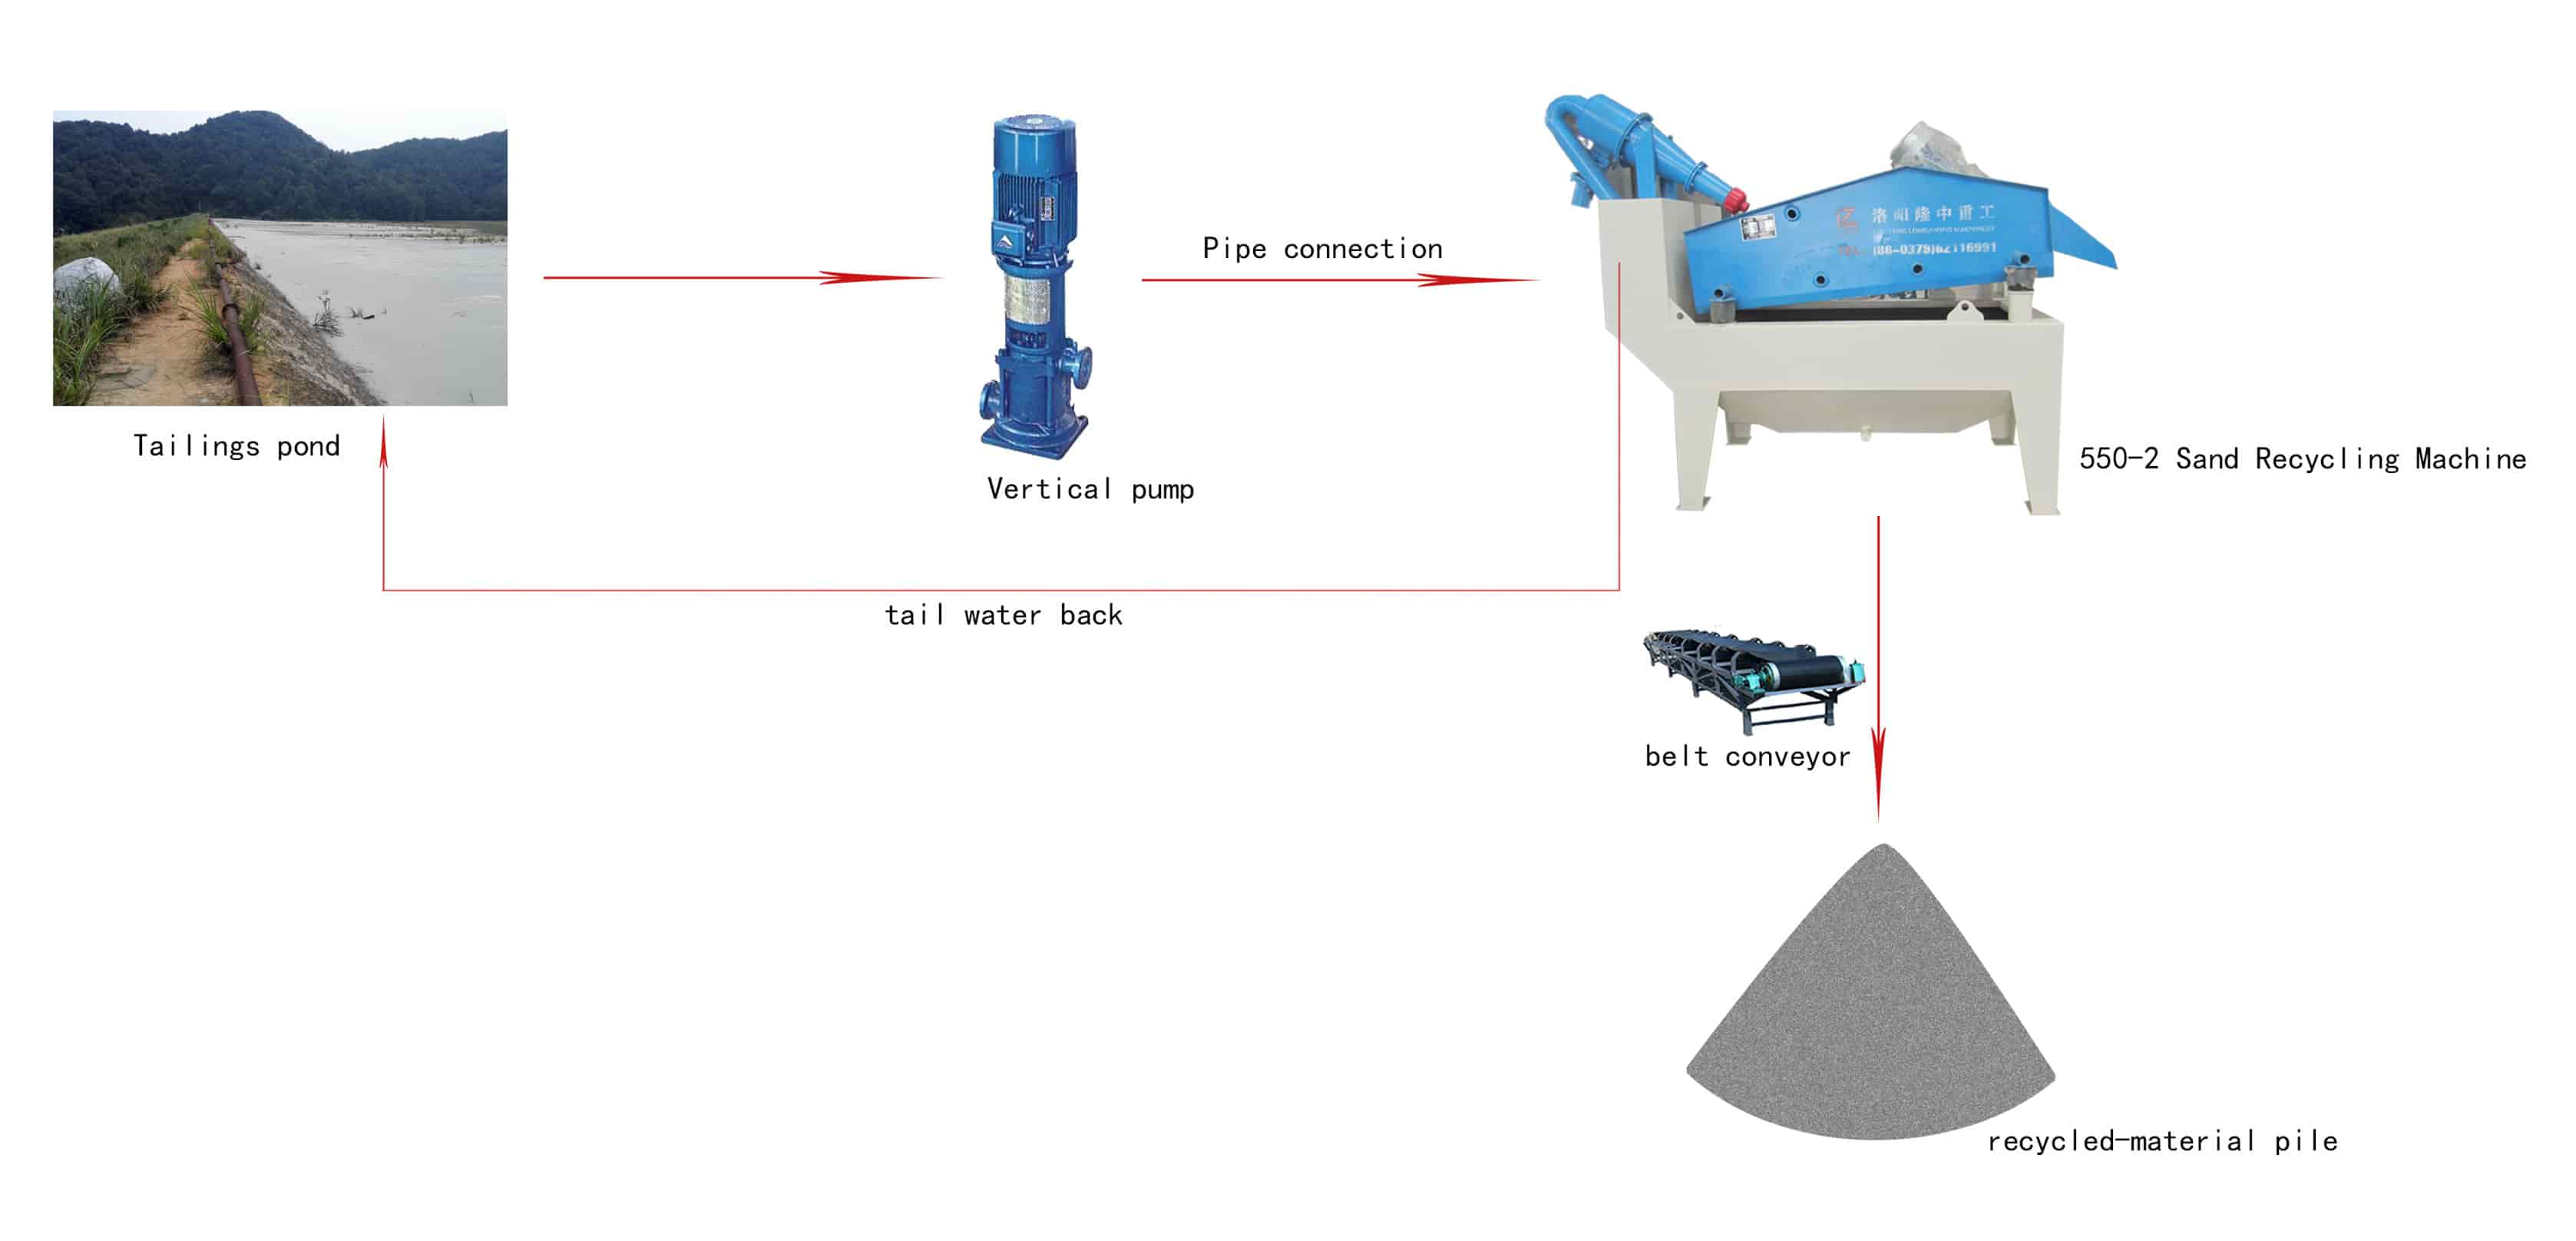 LZ550-Sand-Recycling-Machines